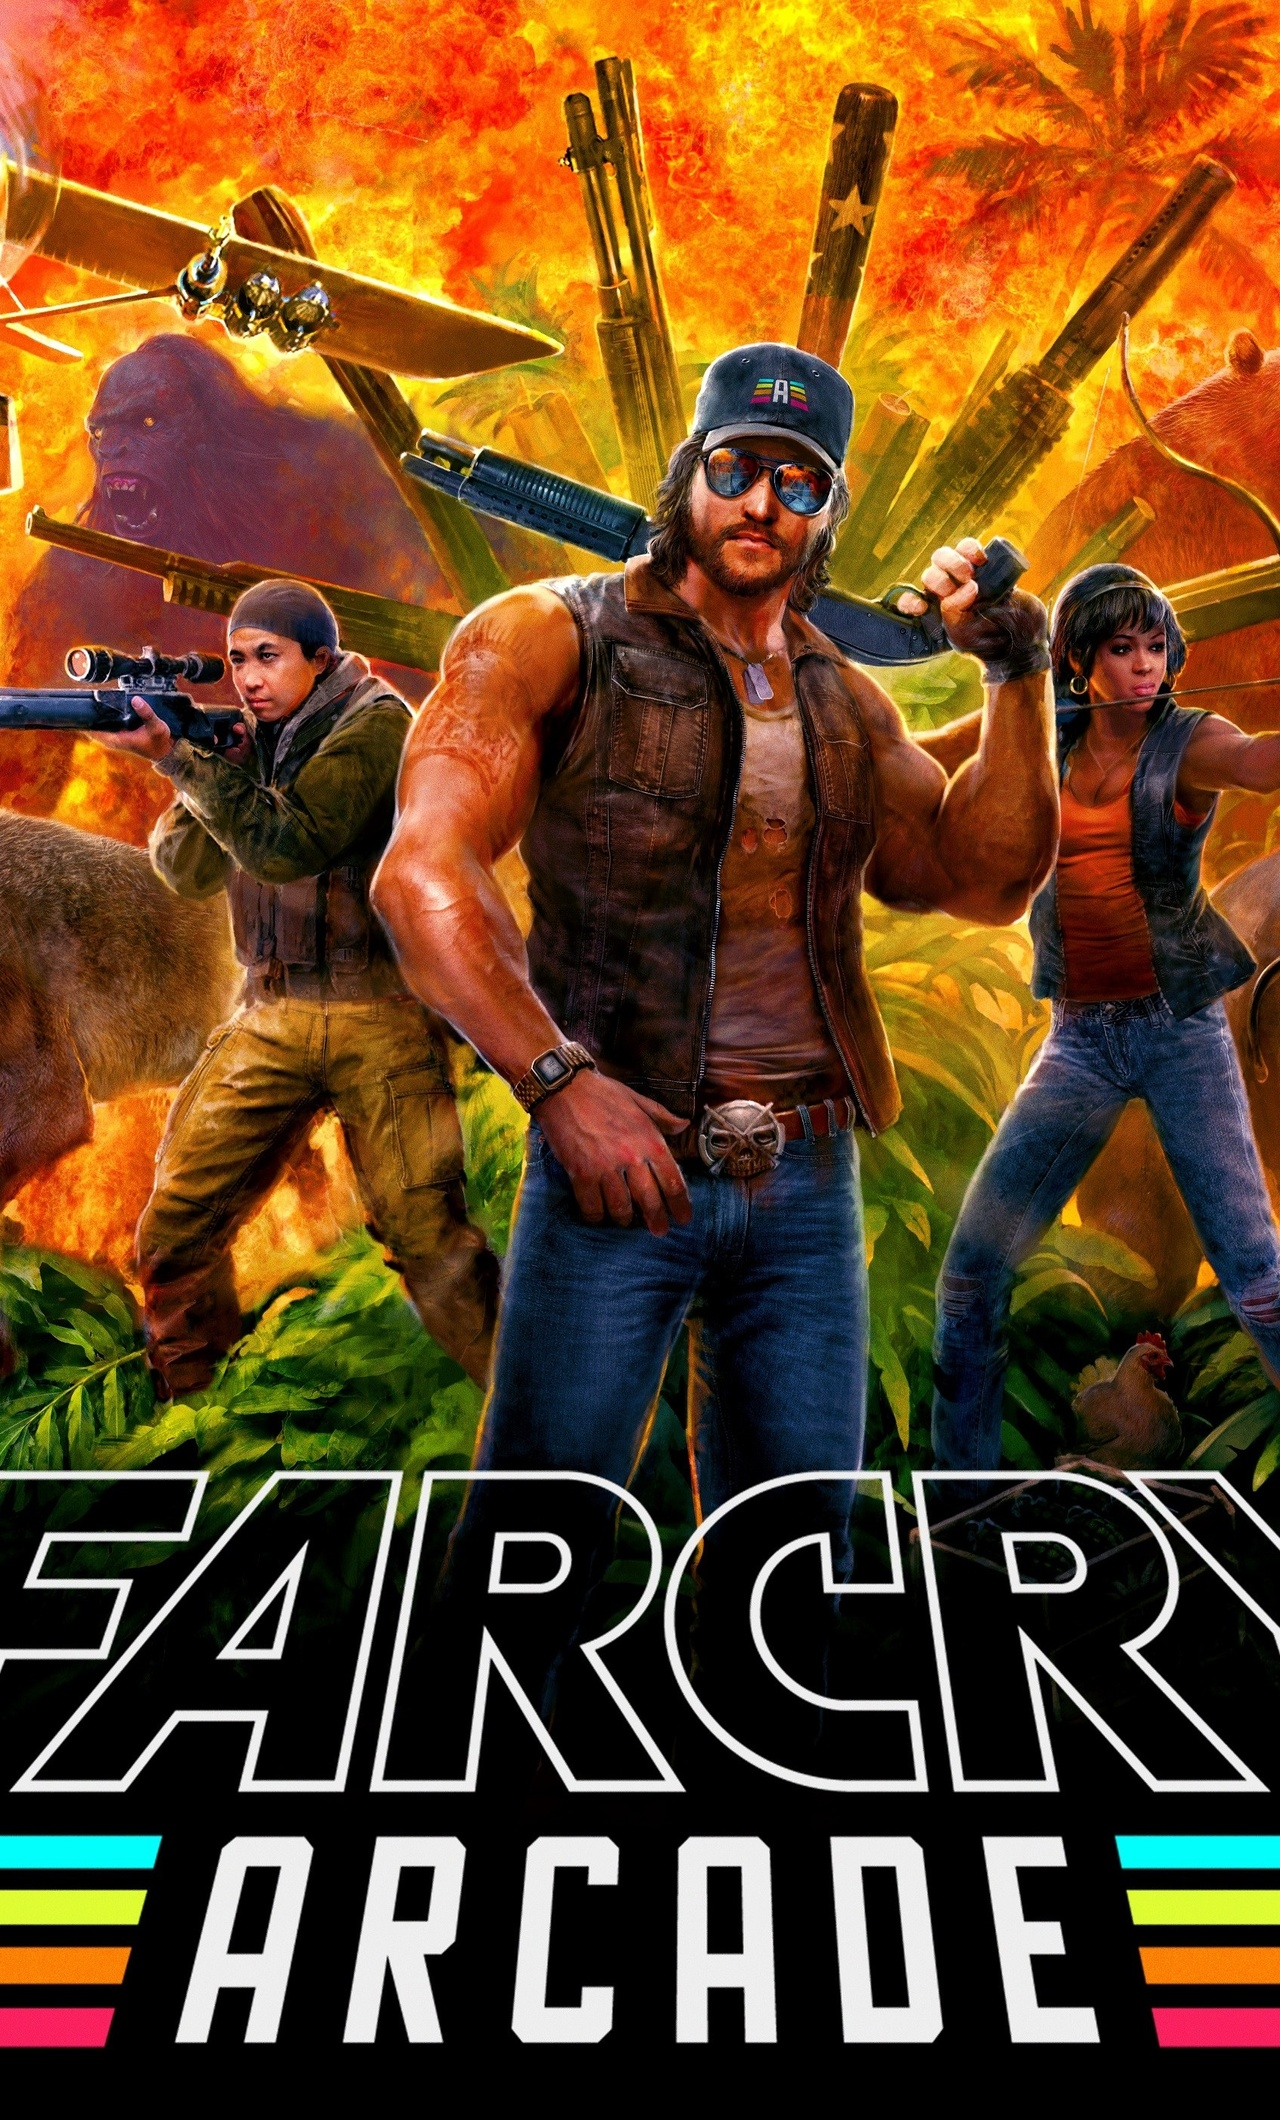 1280x2120 Far Cry 5 Arcade 2018 Iphone 6 Hd 4k Wallpapers Images Backgrounds Photos And Pictures